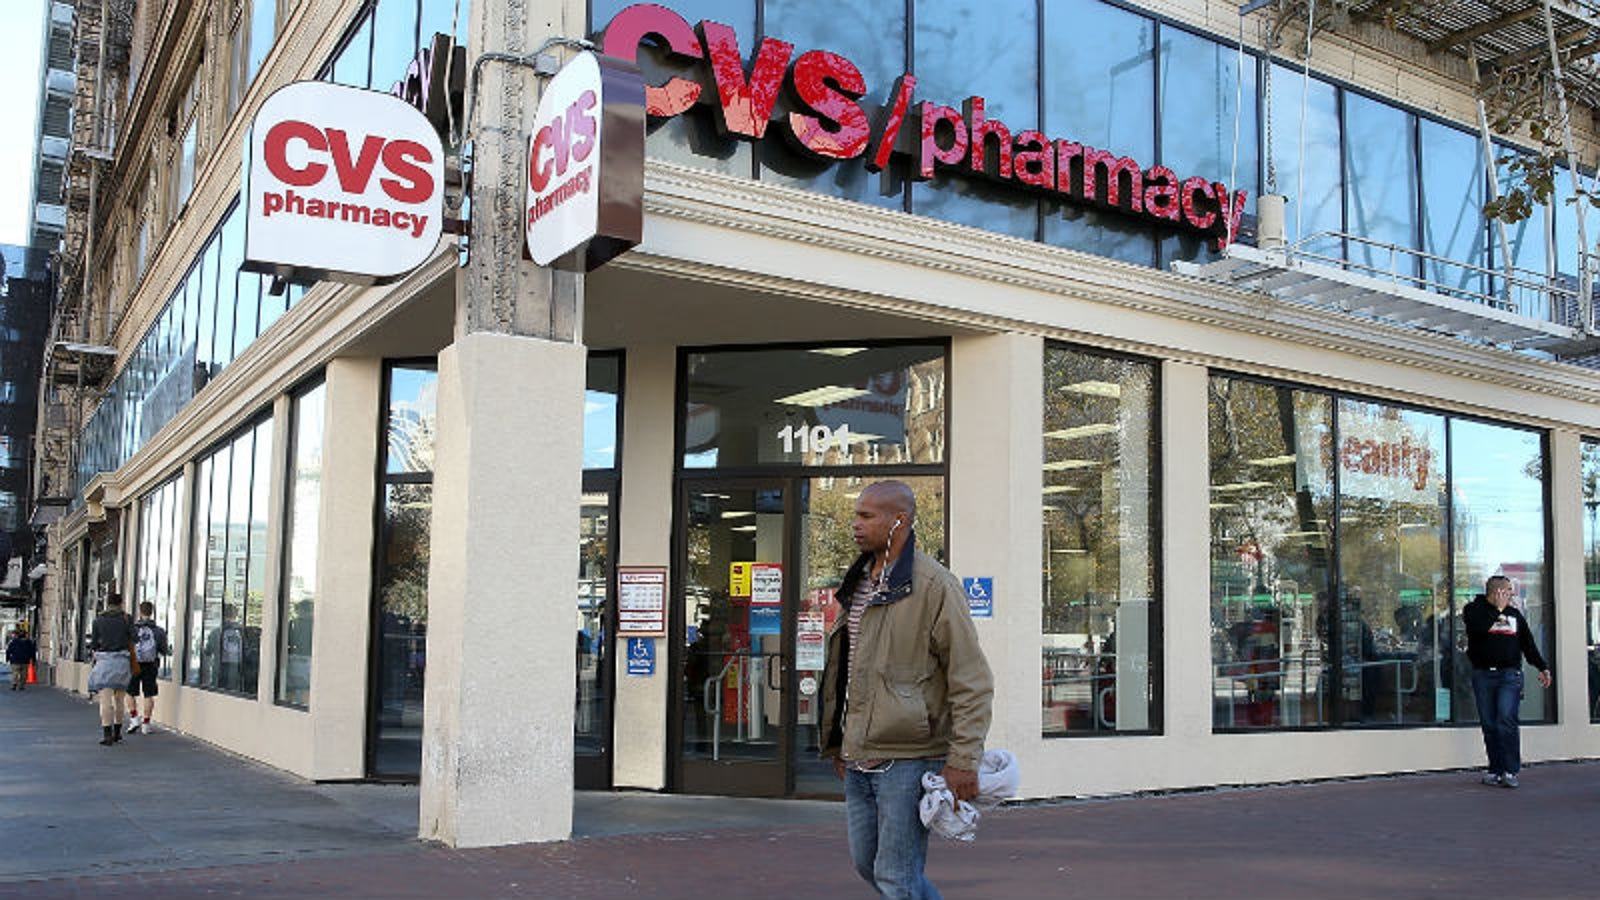 former cvs employees say they were told to target